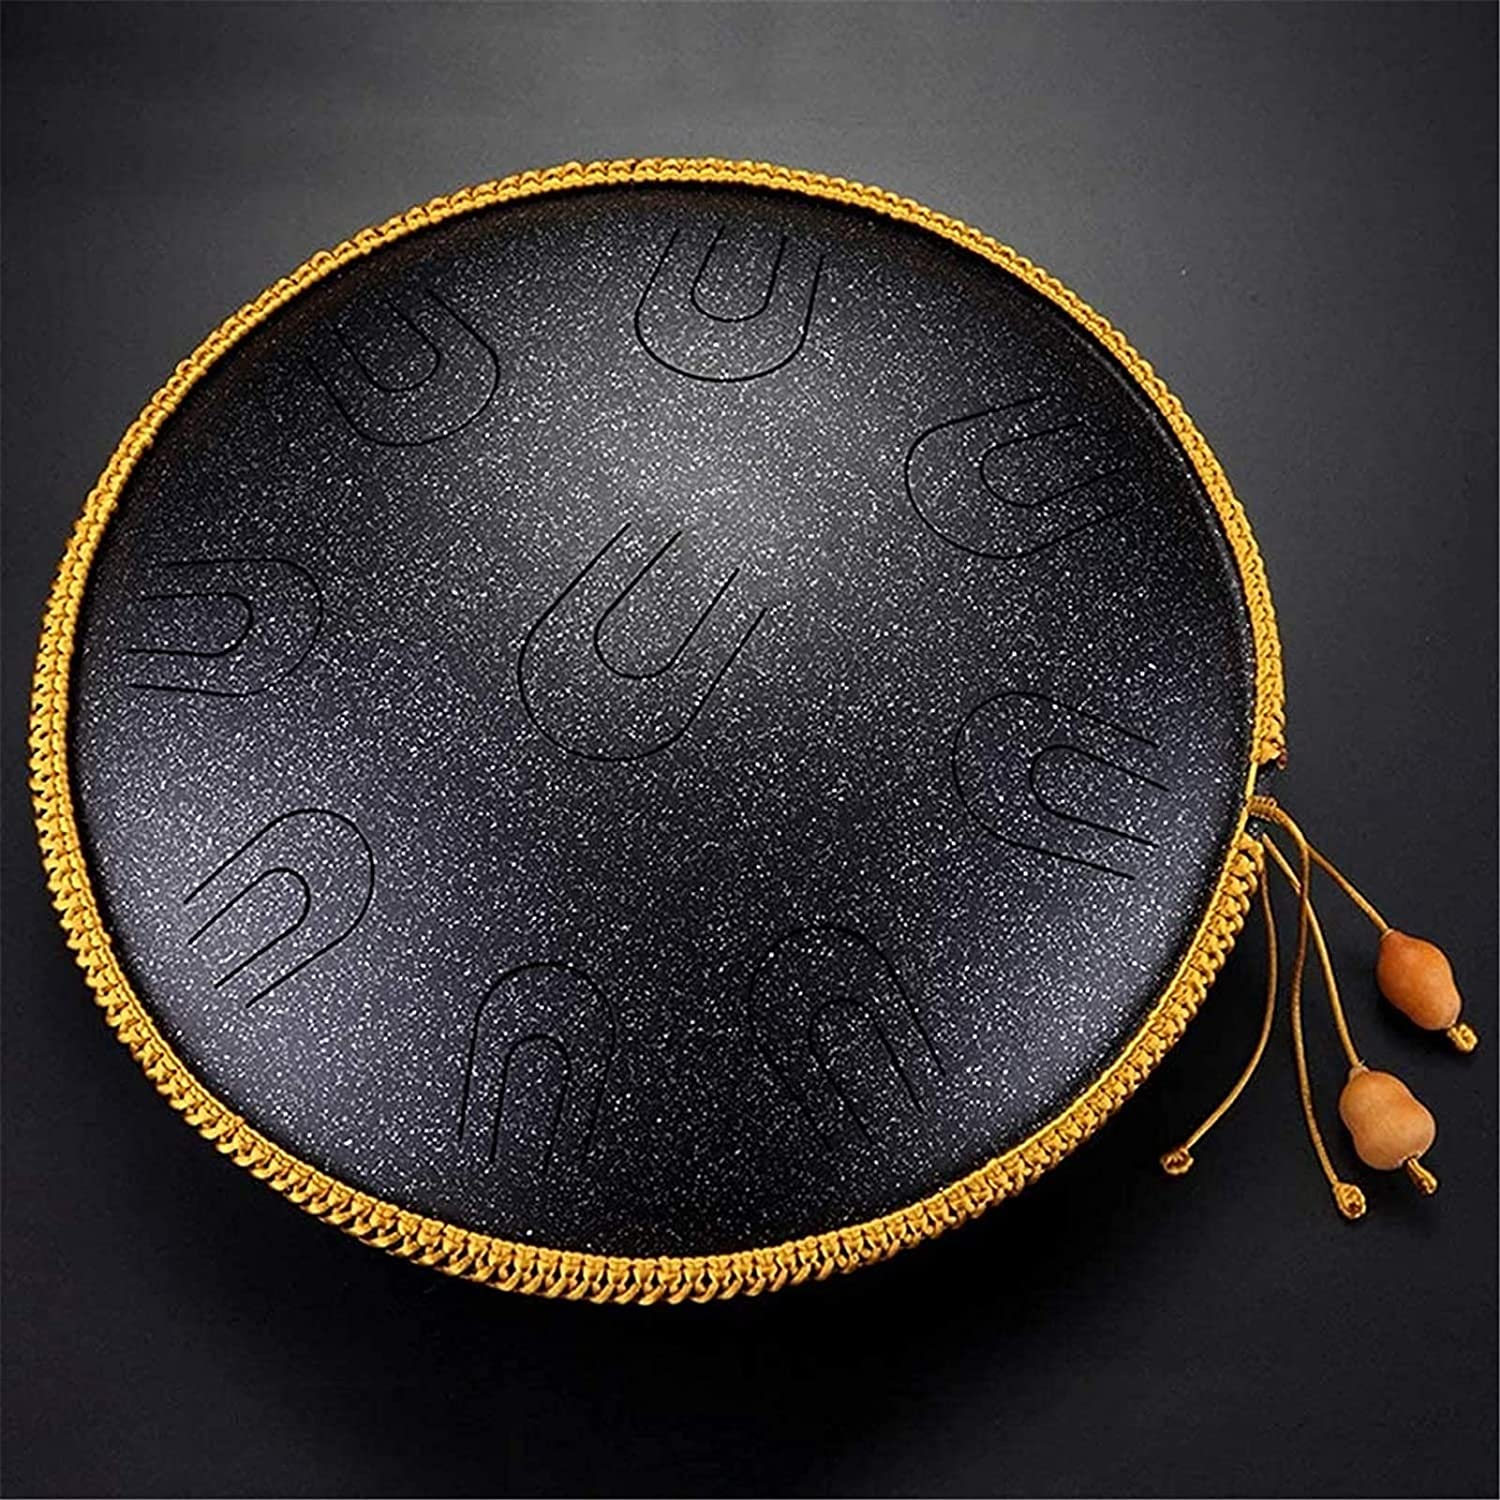 Handpan Drum Tank Drum with Bag Rubber Mallets for Musical Education Concert Mind Healing Yoga Meditation WENJIE Steel Drums Steel Tongue Drum 14 inches 9 Notes Percussion Instrument D Minor